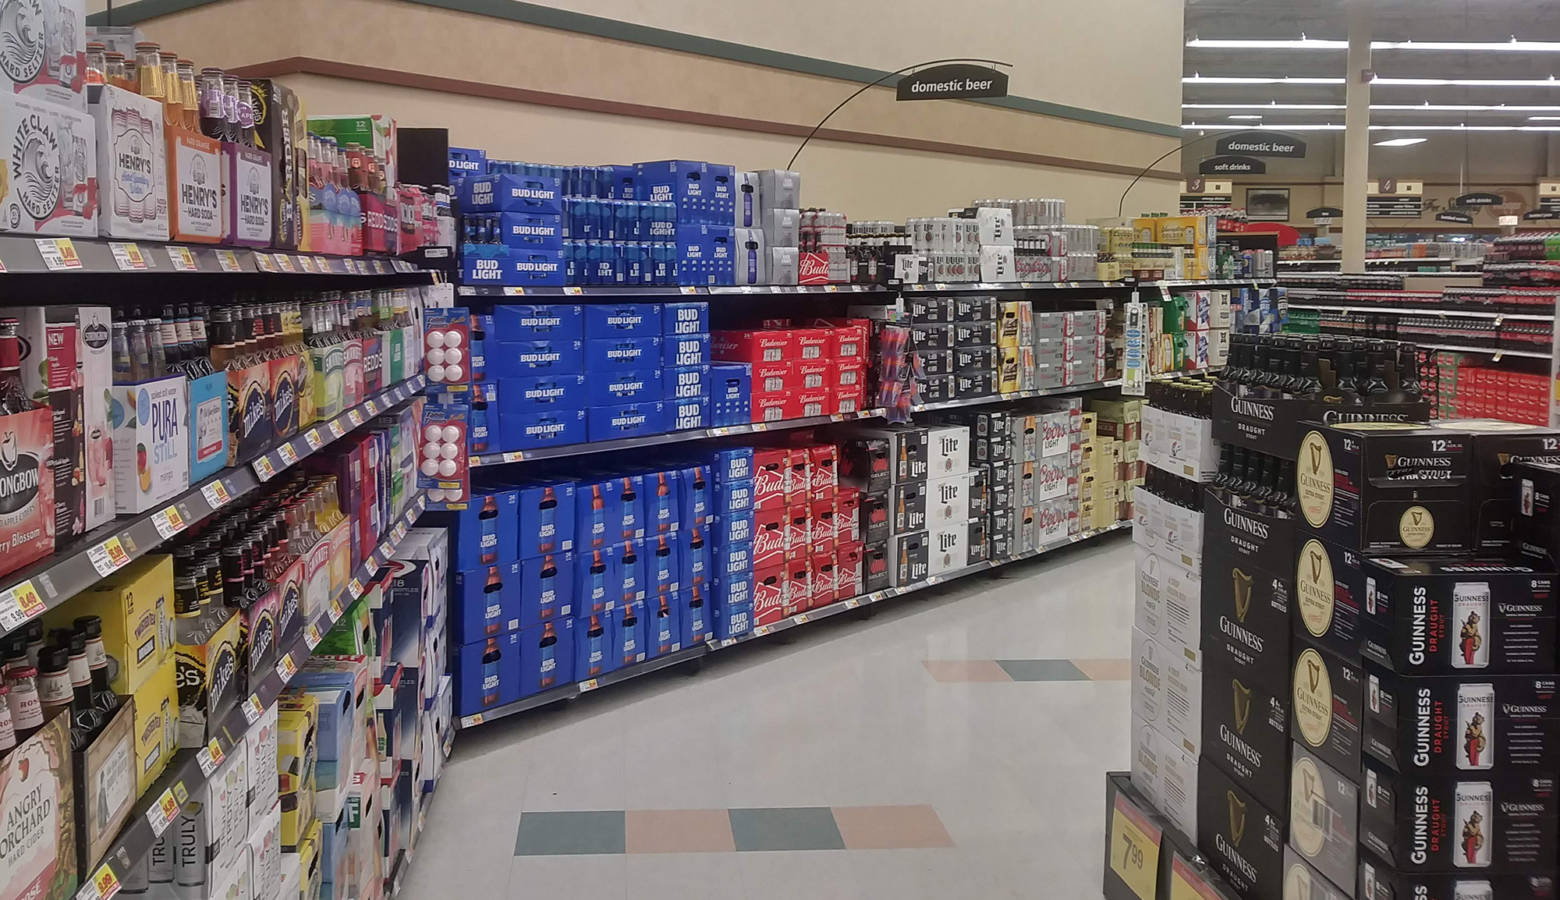 Some considered provisions affect grocery stores: clerks would have to be at least 21 years old and go through training to ring up alcohol. And the stores would have to keep all their alcohol confined to one area. (Lauren Chapman/IPB News)